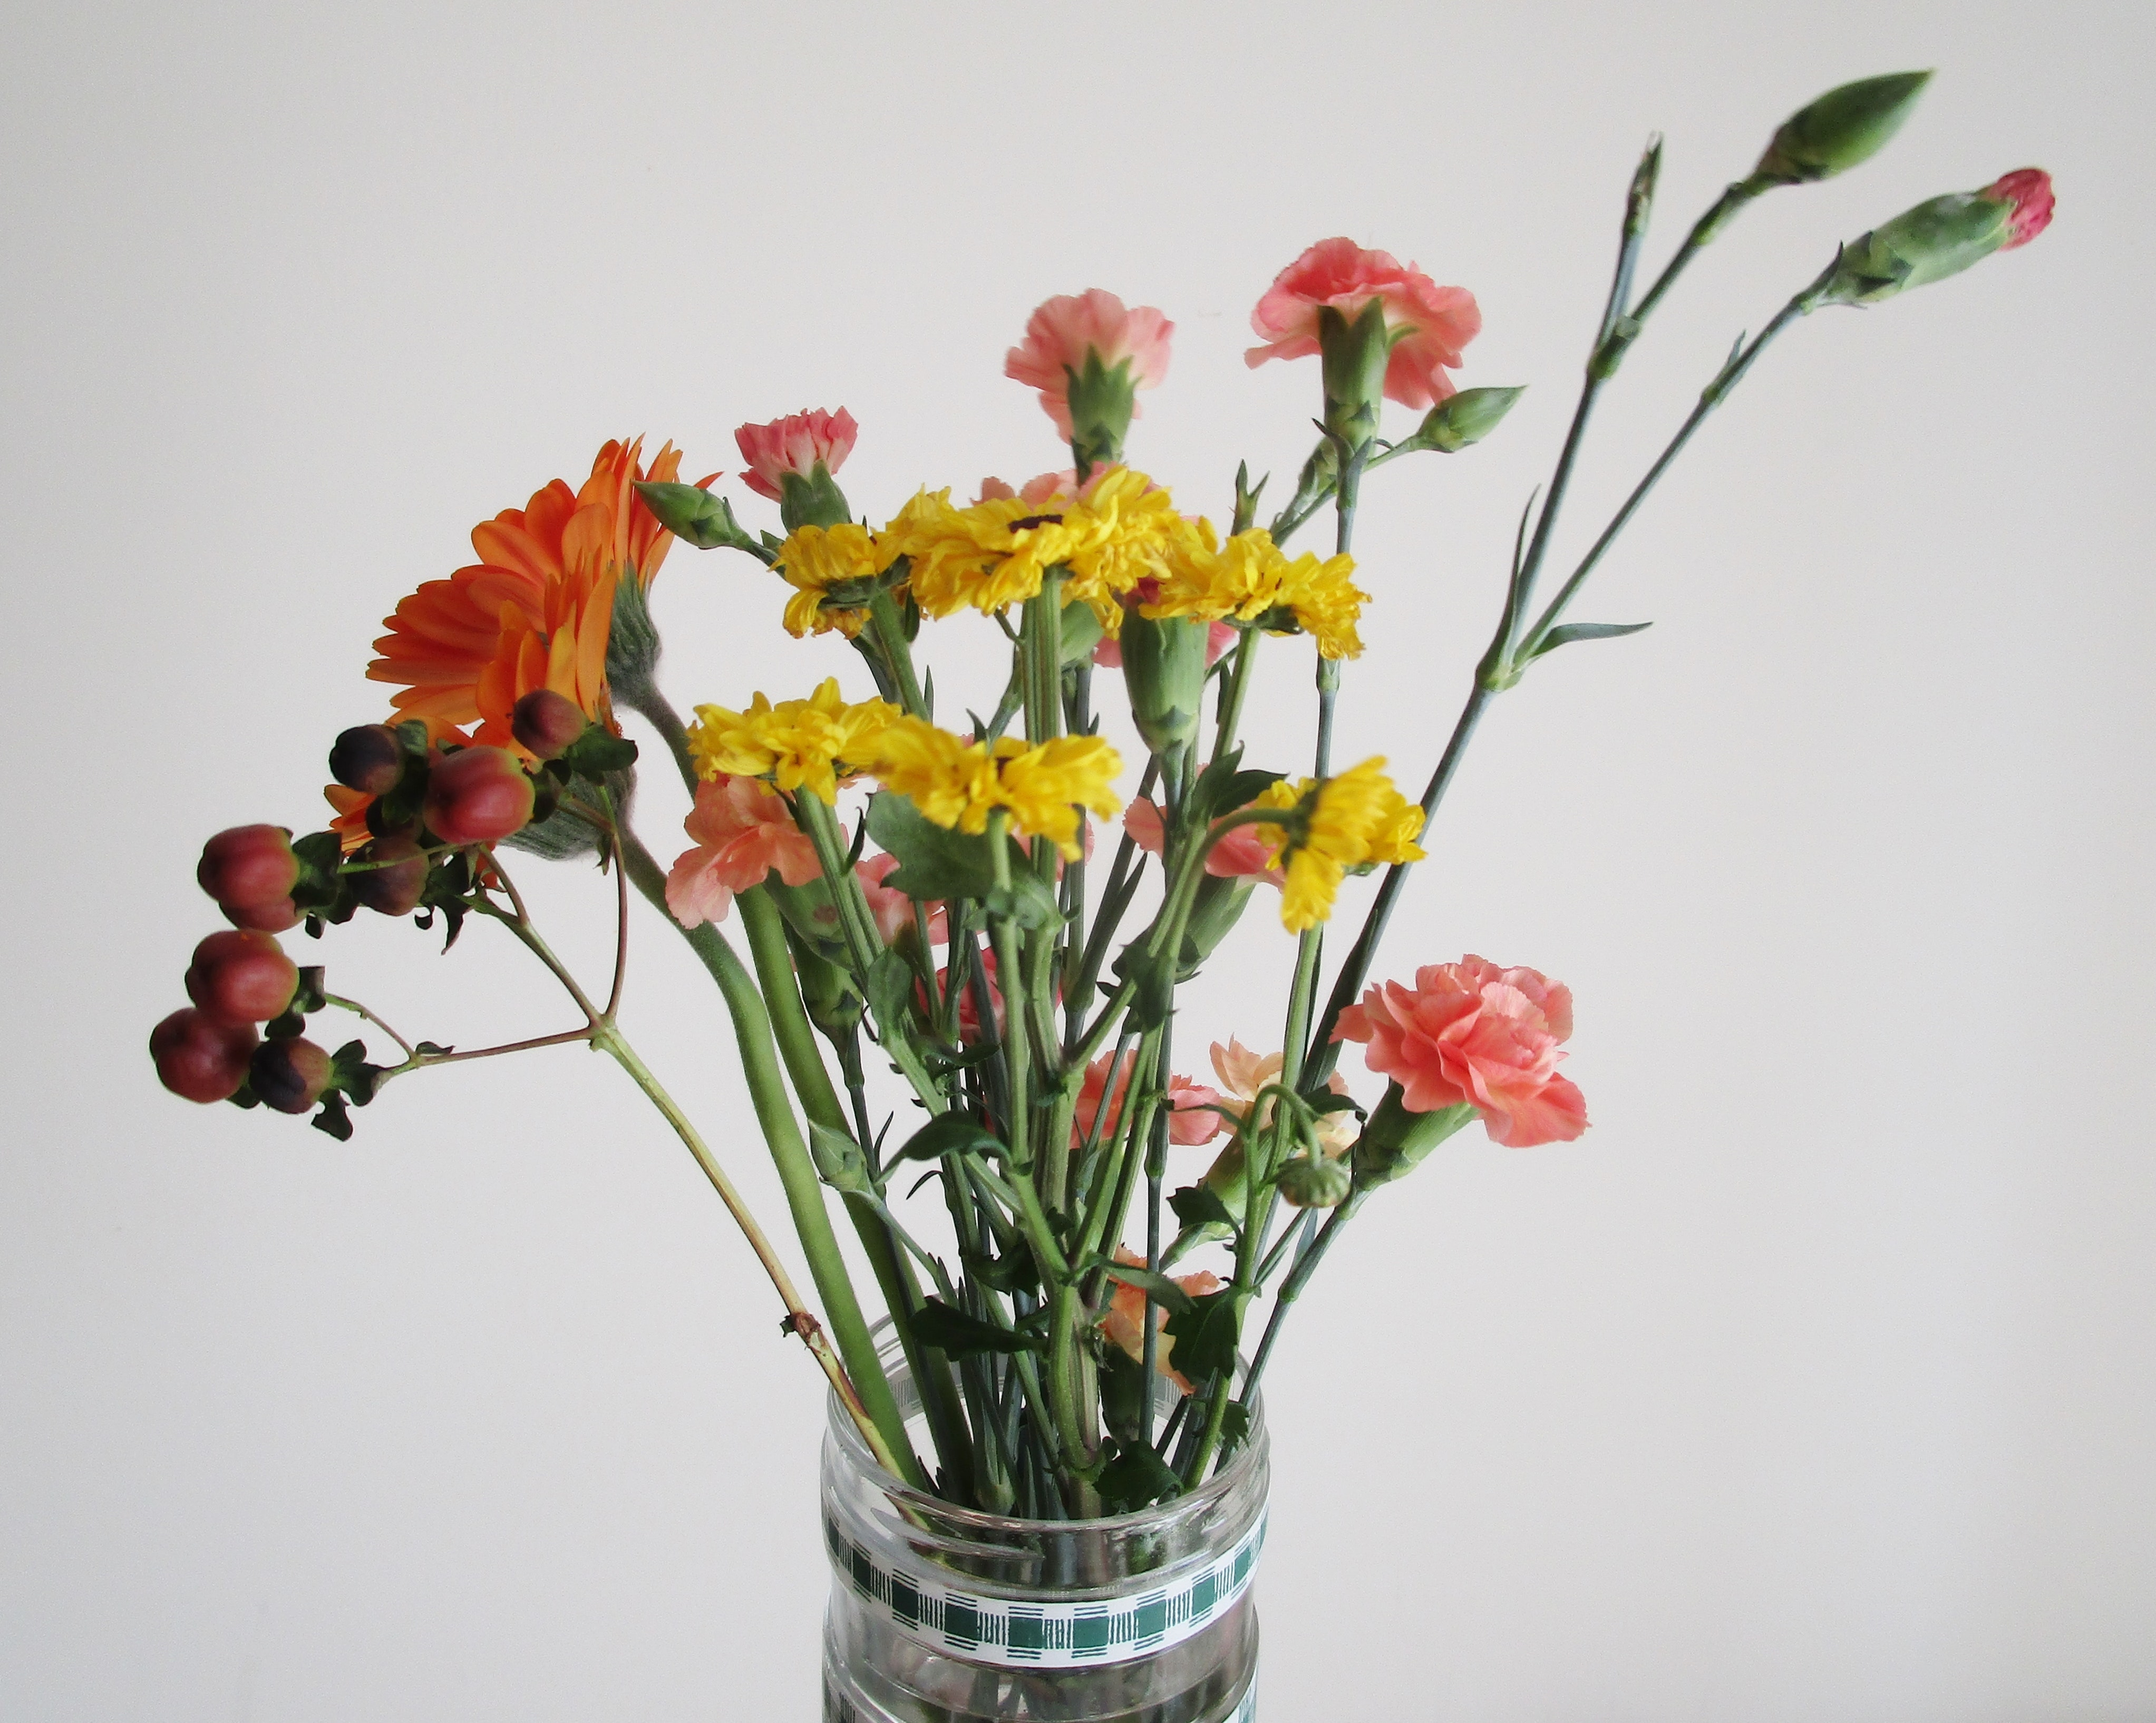 Free photo clear glass vase with red and yellow flowers leaves clear glass vase with red and yellow flowers leaves growth petals plants mightylinksfo